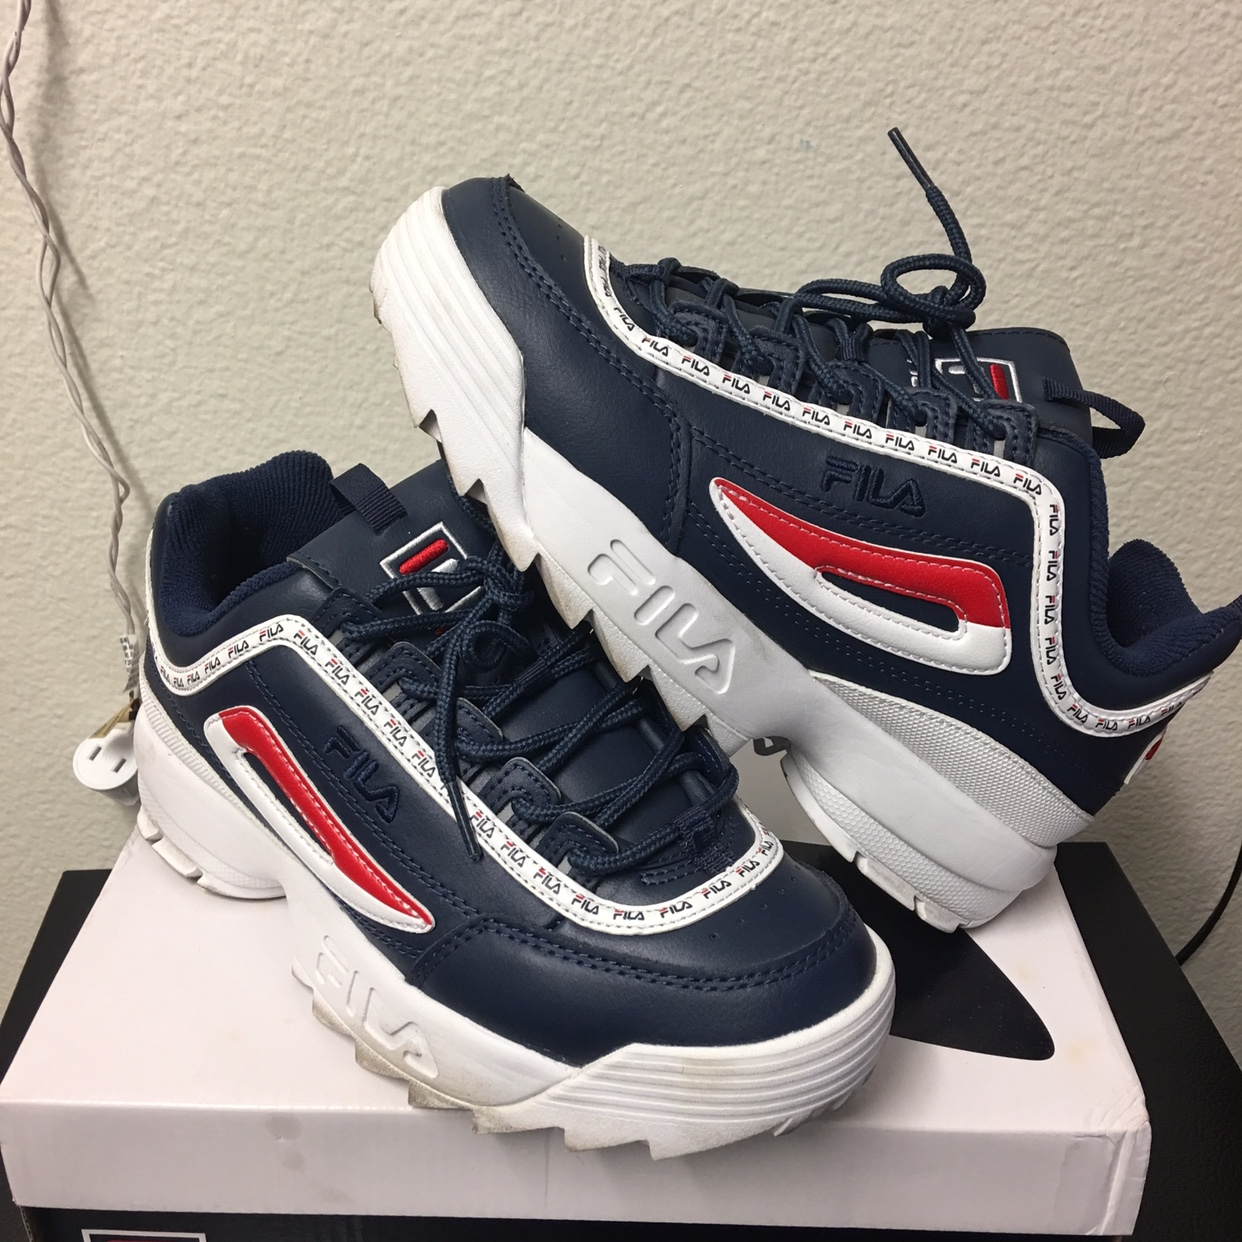 FILA DISRUPTOR 2 navy blue, red, and